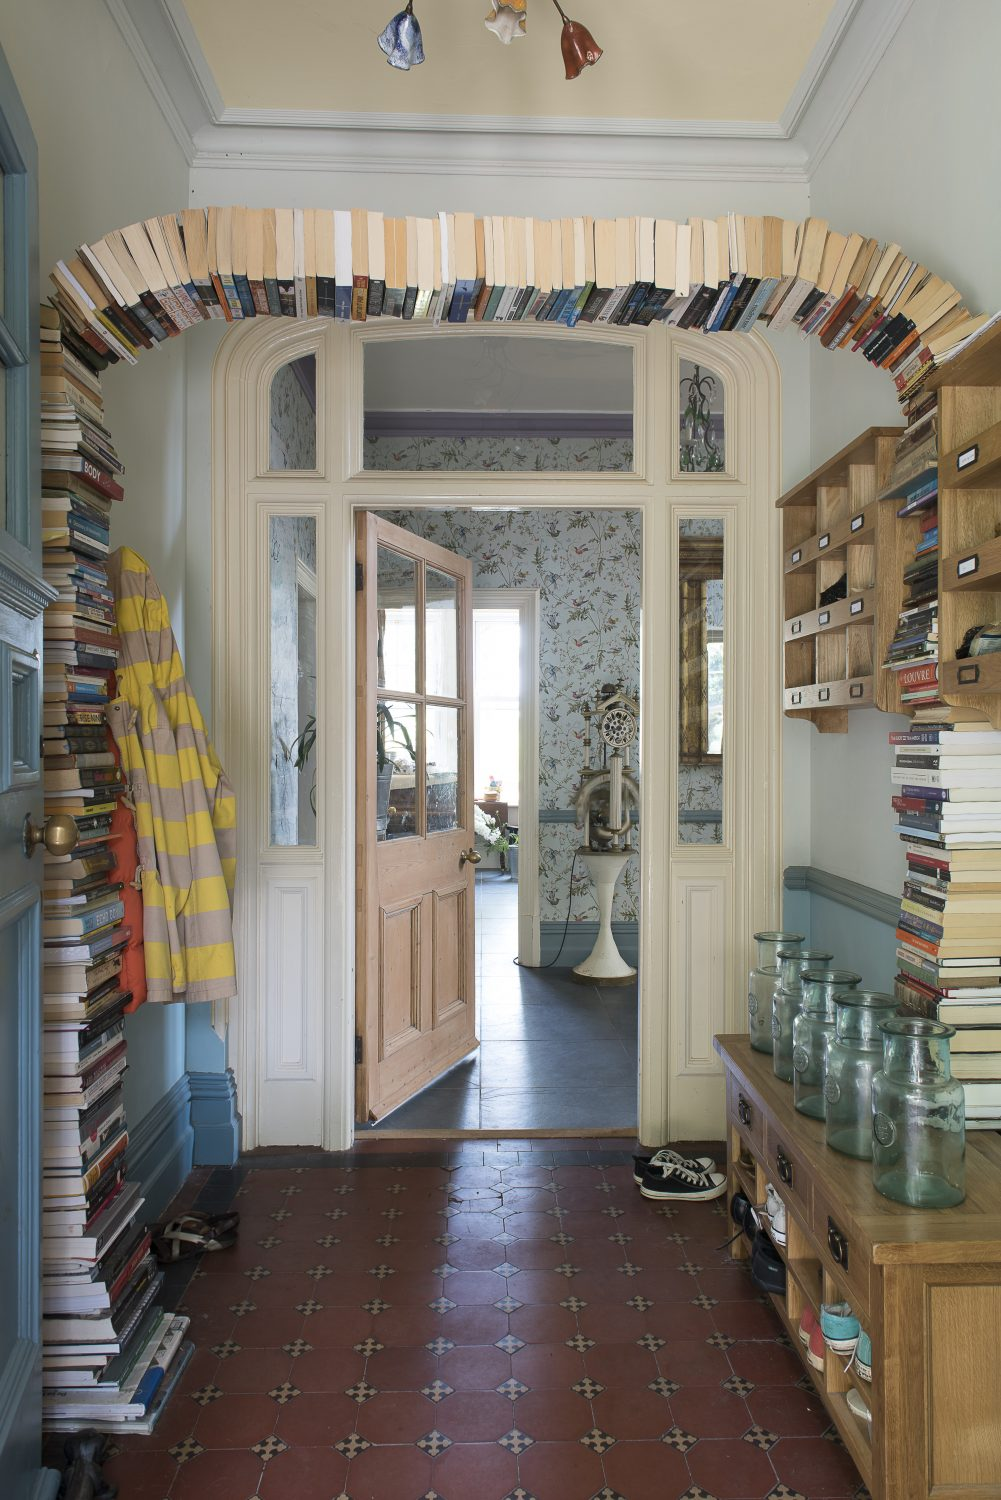 An arch of suspended books wittily frames the entrance to Archer Lodge